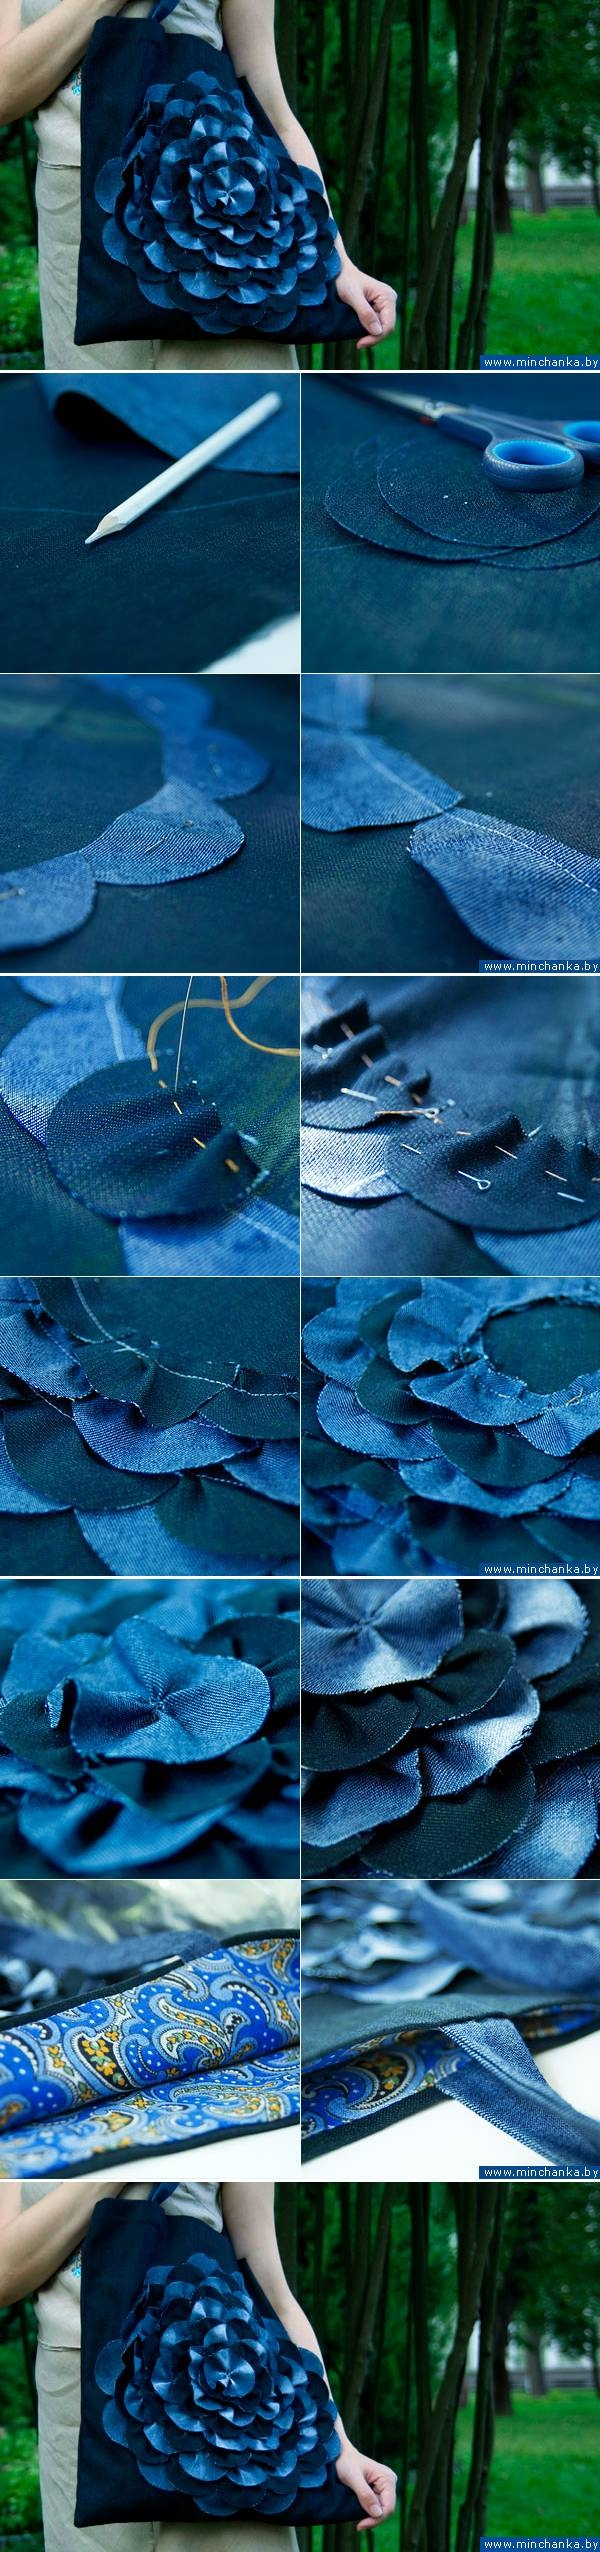 Diy denim flower bag pictures, photos, and images for facebook.